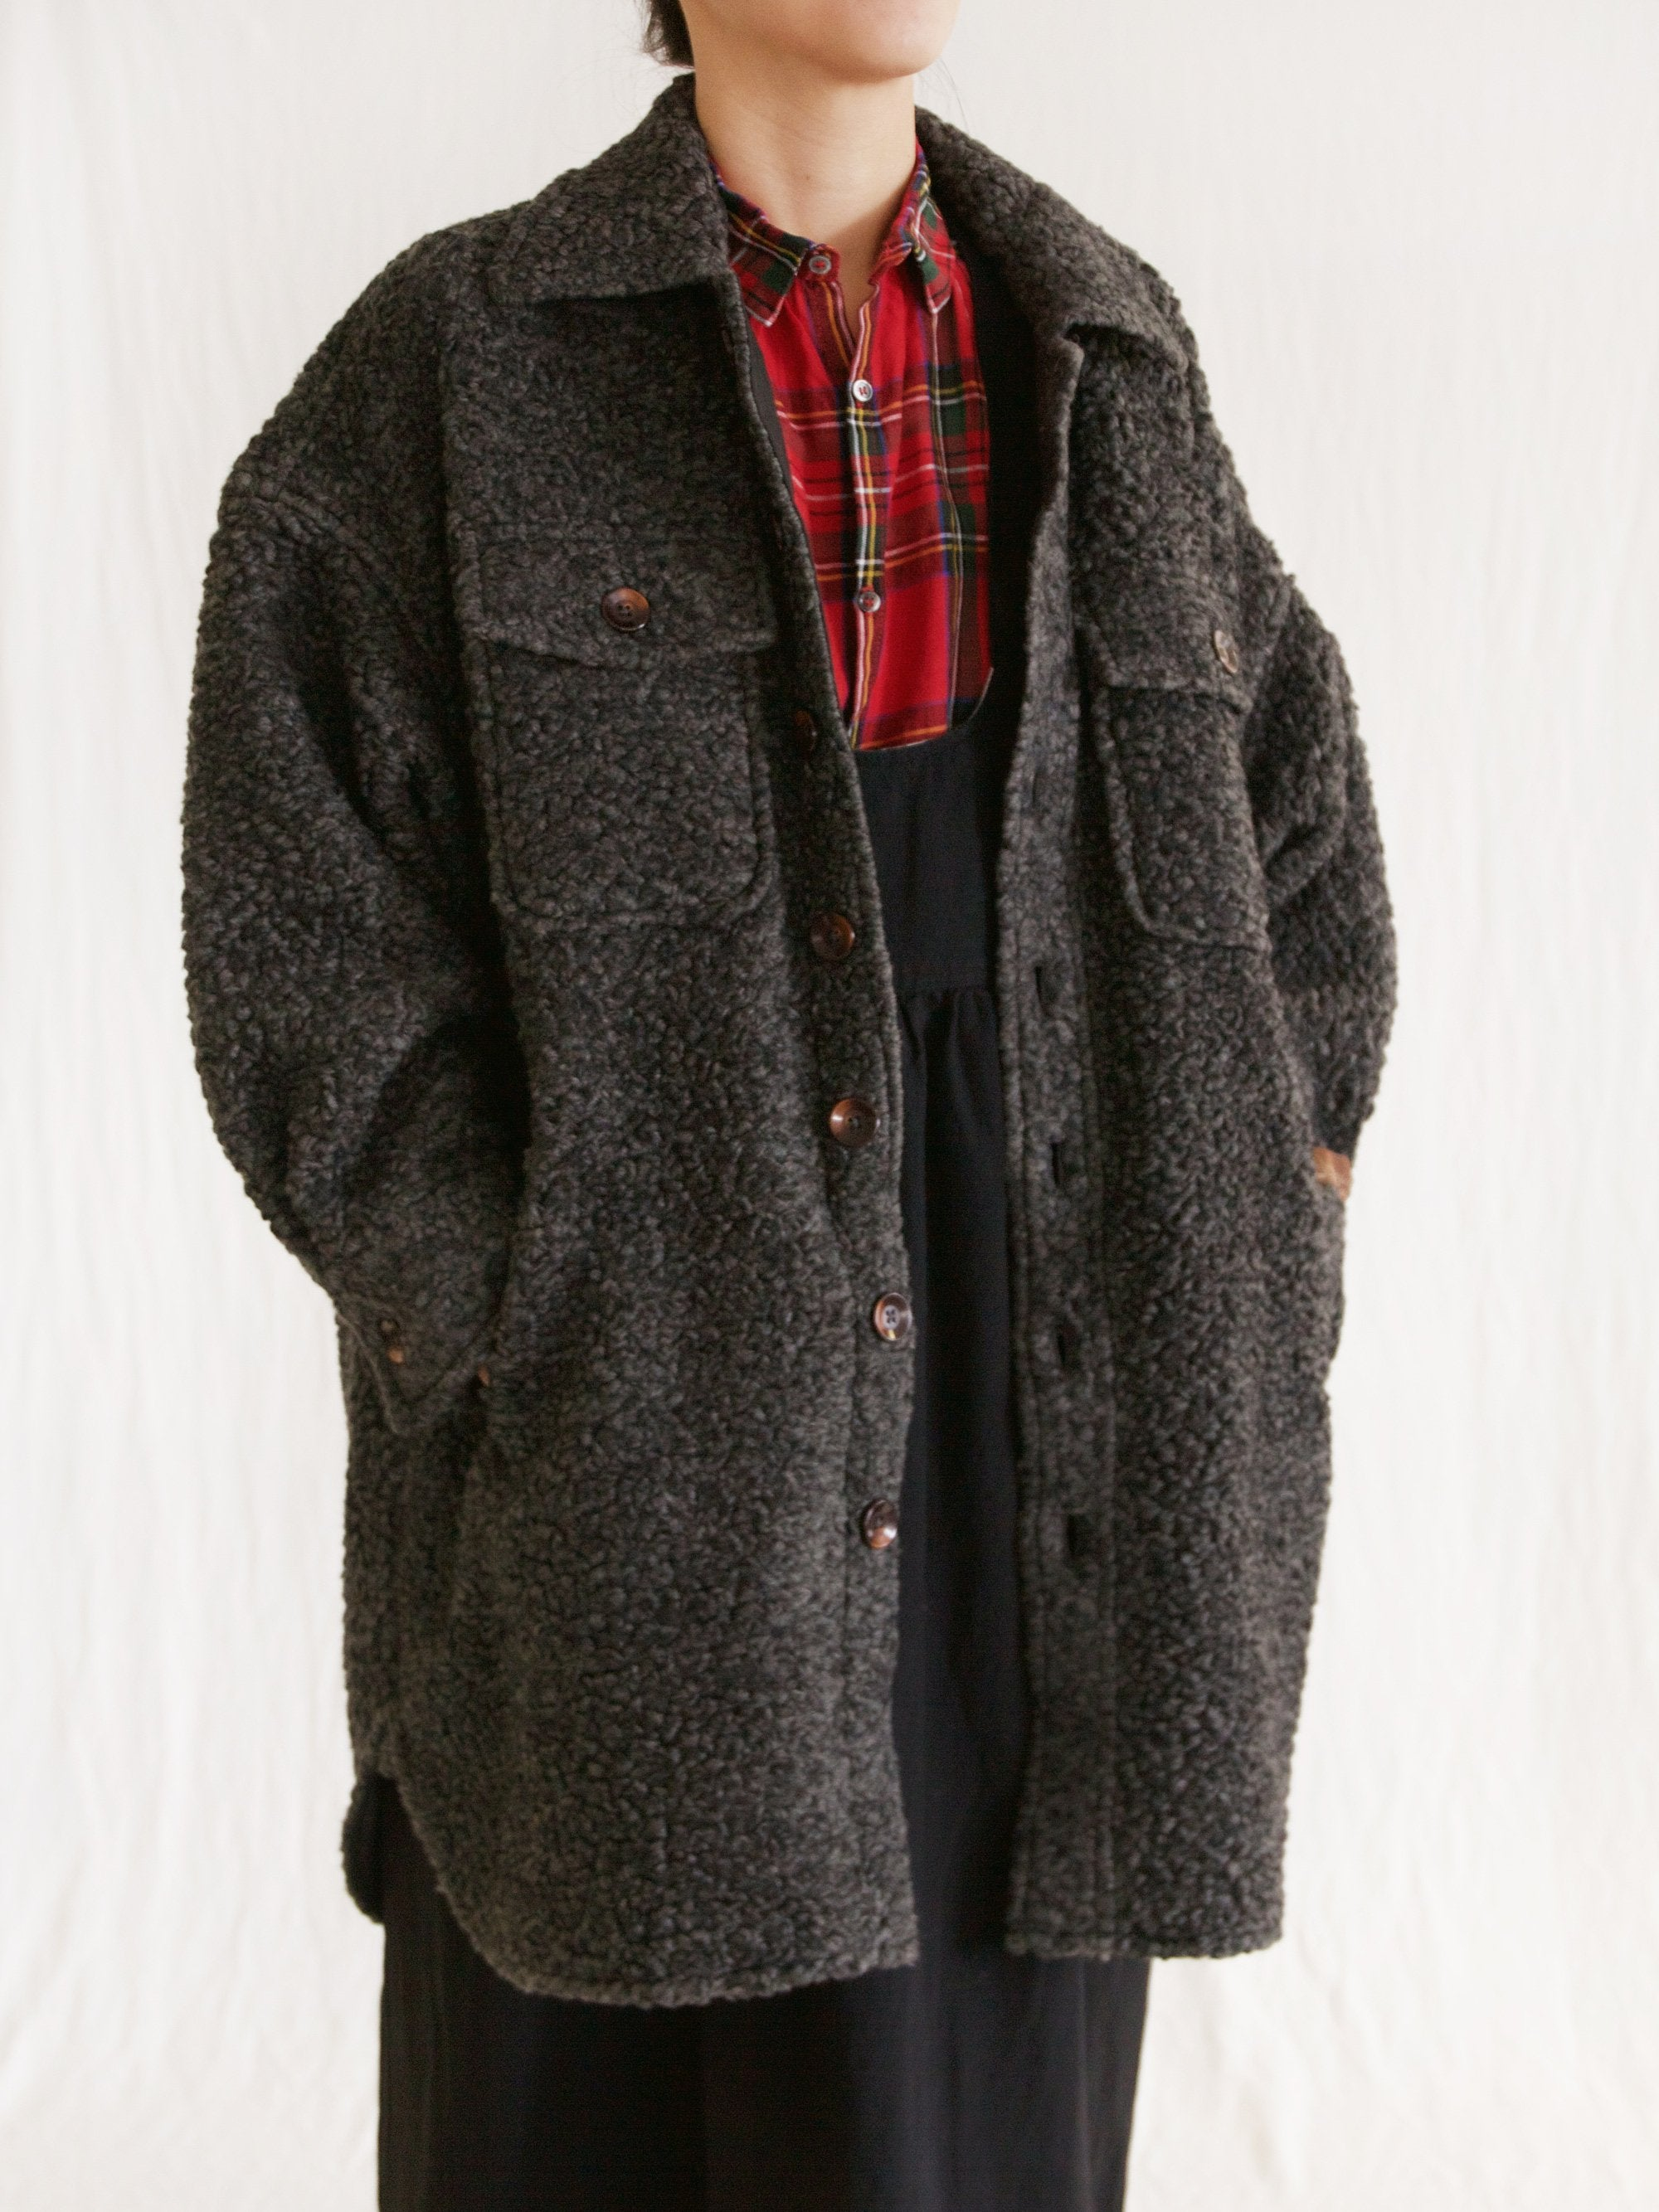 Namu Shop - Ichi Antiquites Teddy Coat